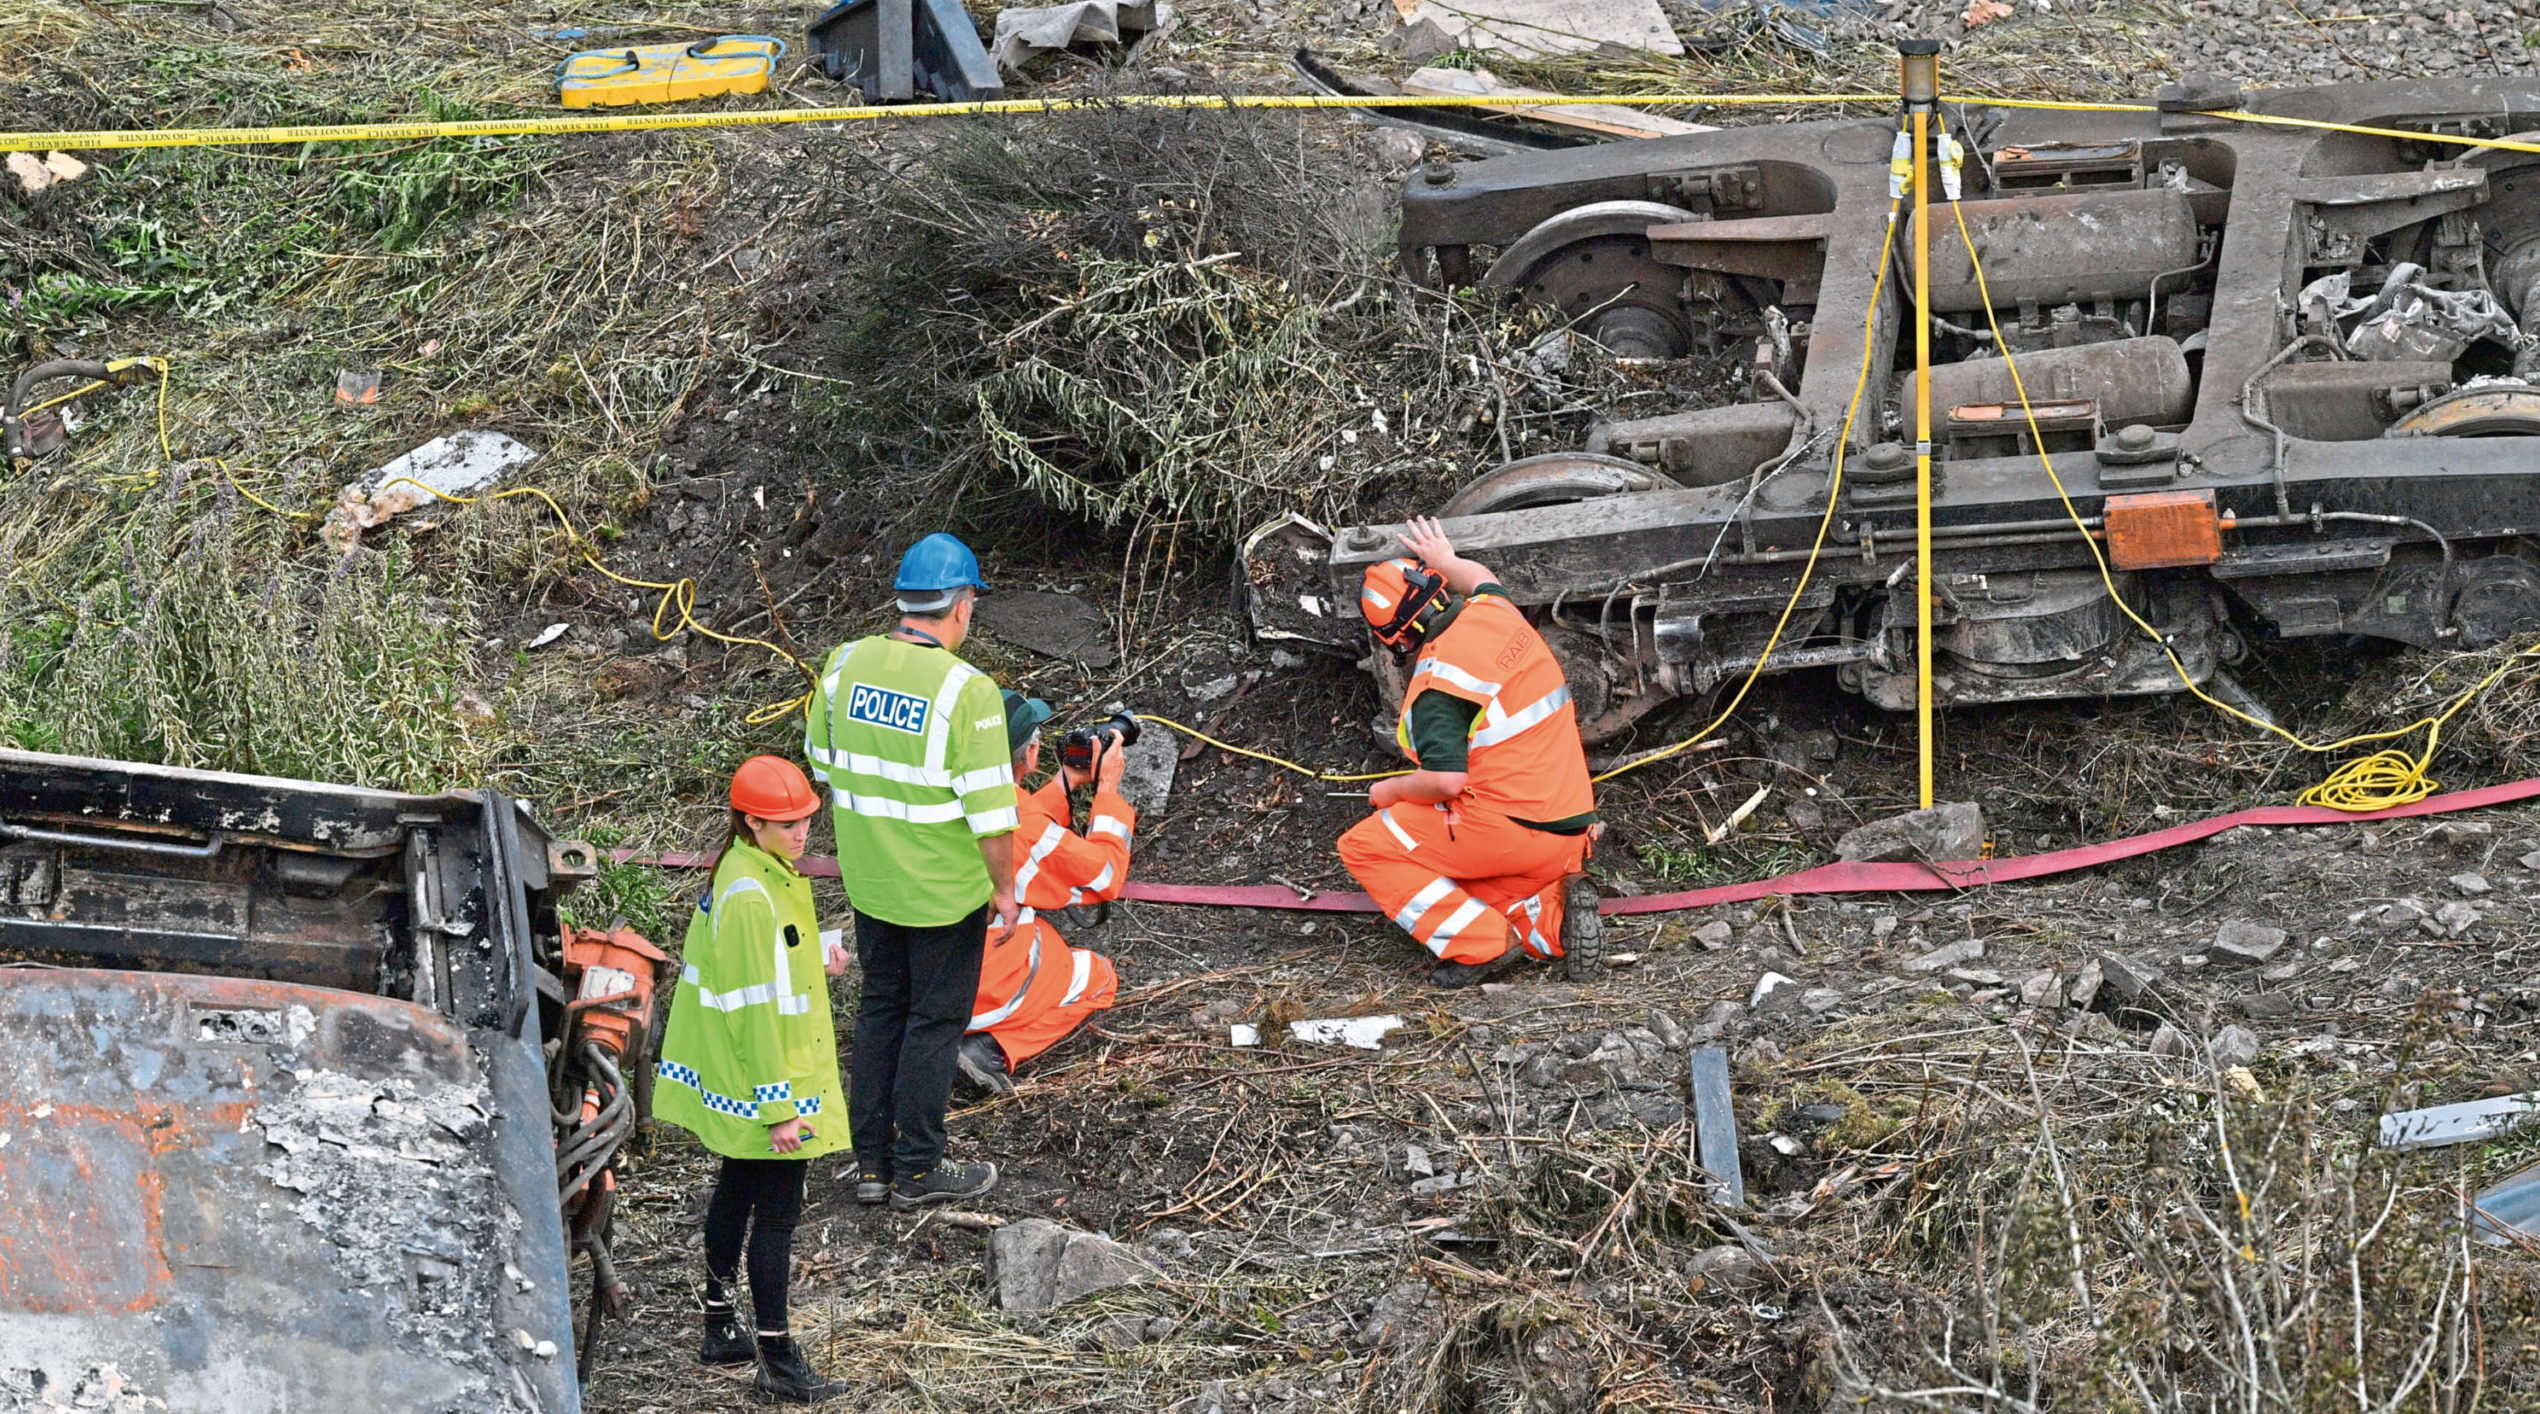 Emergency services inspect the scene near Stonehaven, Aberdeenshire, following the derailment of the ScotRail train which cost the lives of three people.